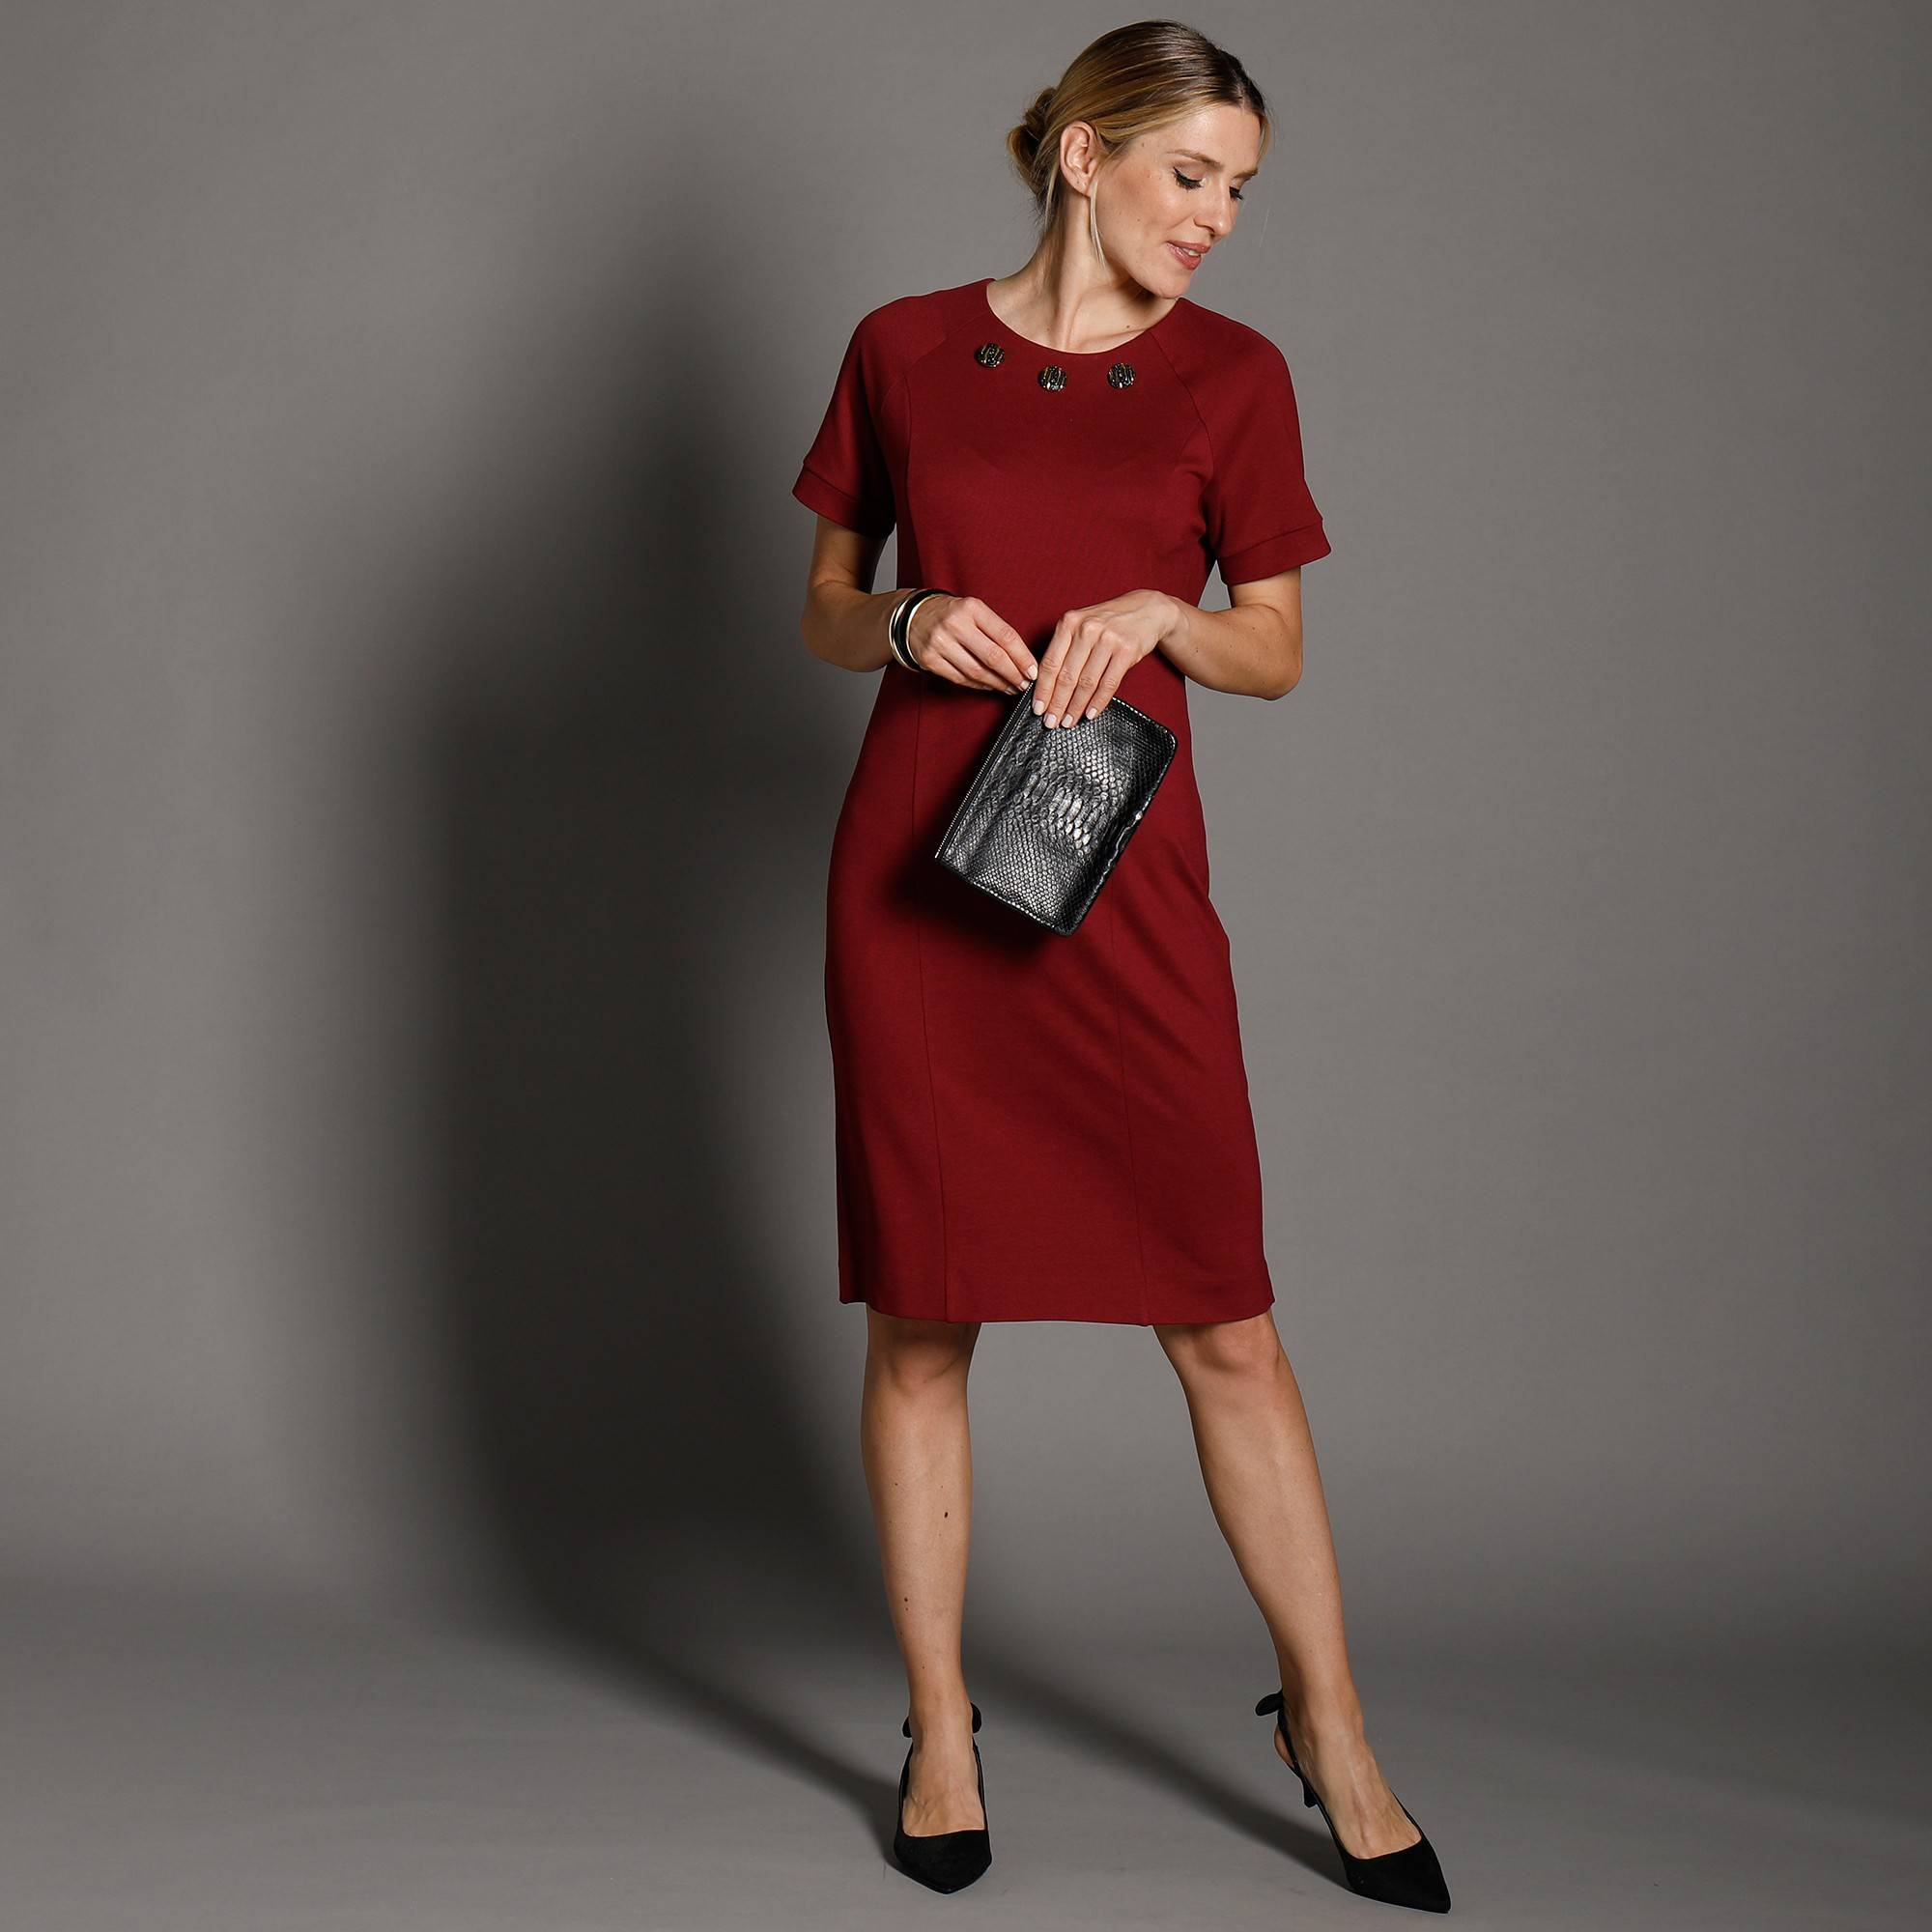 Robe unie col boutons fantaisies - Rouge - Taille : 42,44 - Blancheporte